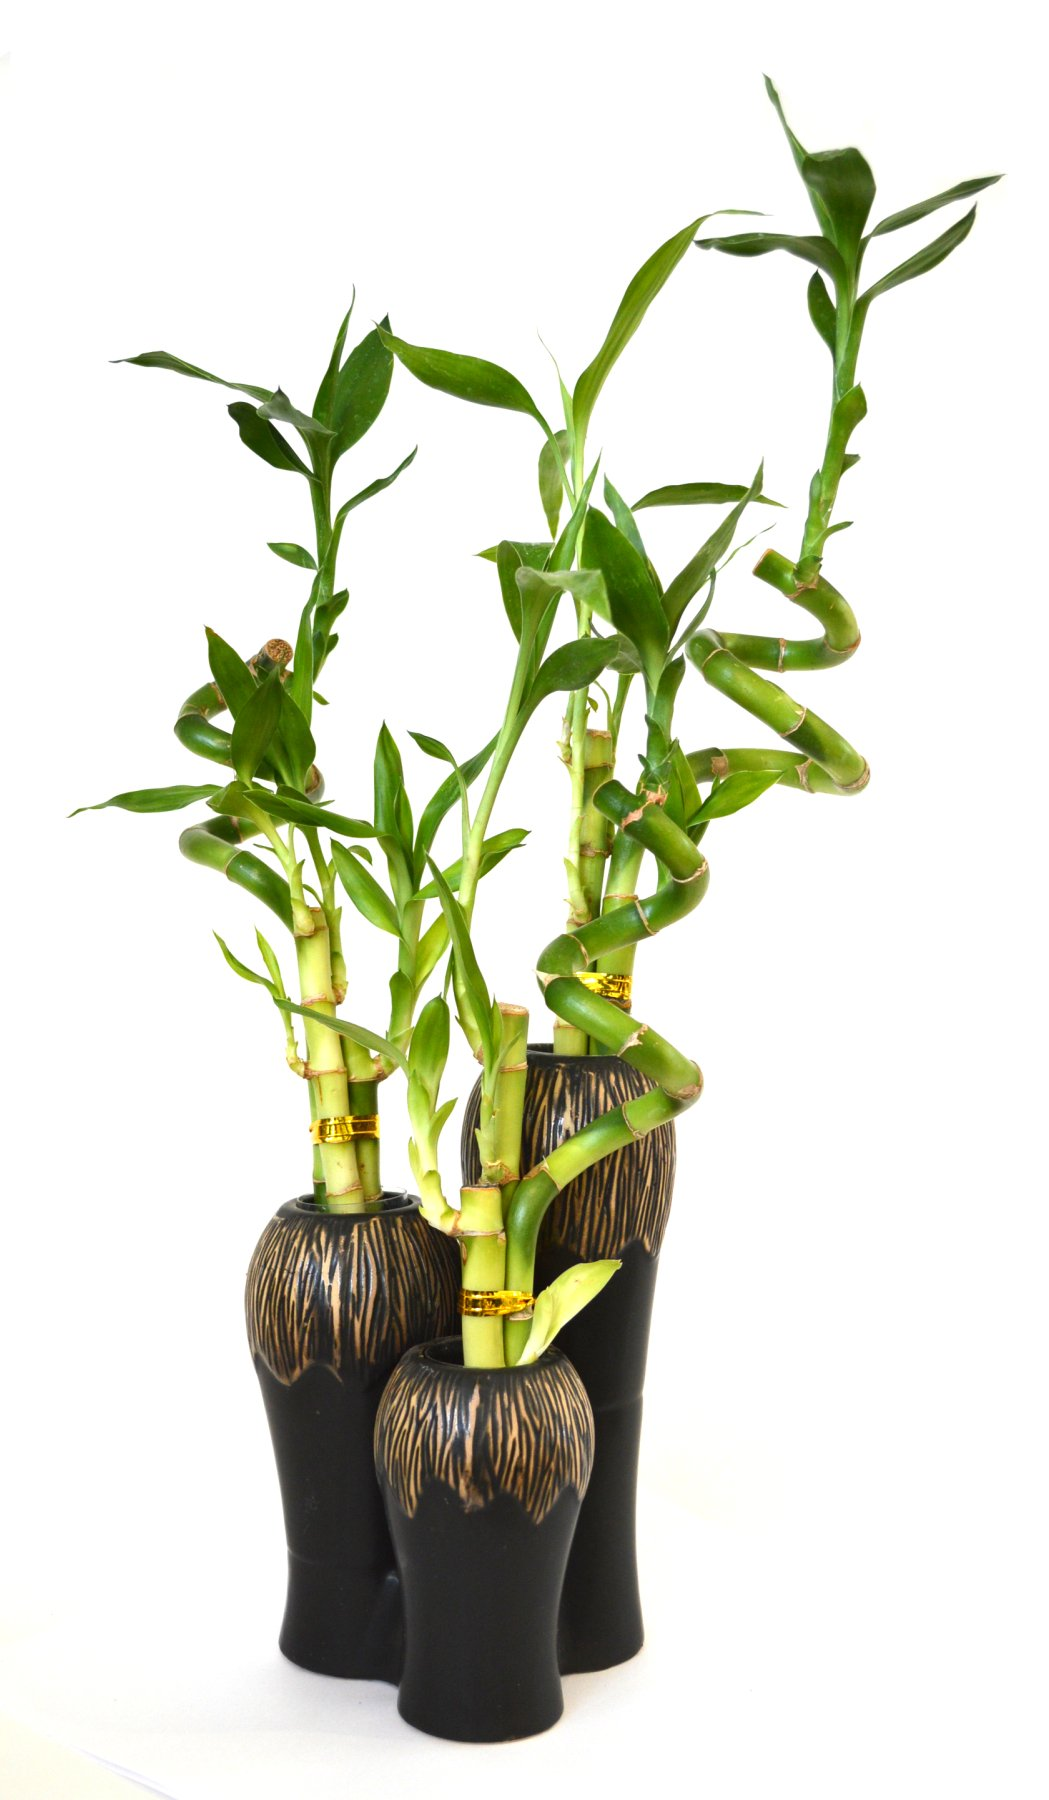 9GreenBox - Lucky Bamboo - Spiral Style 3 Set with Ceramic Vases